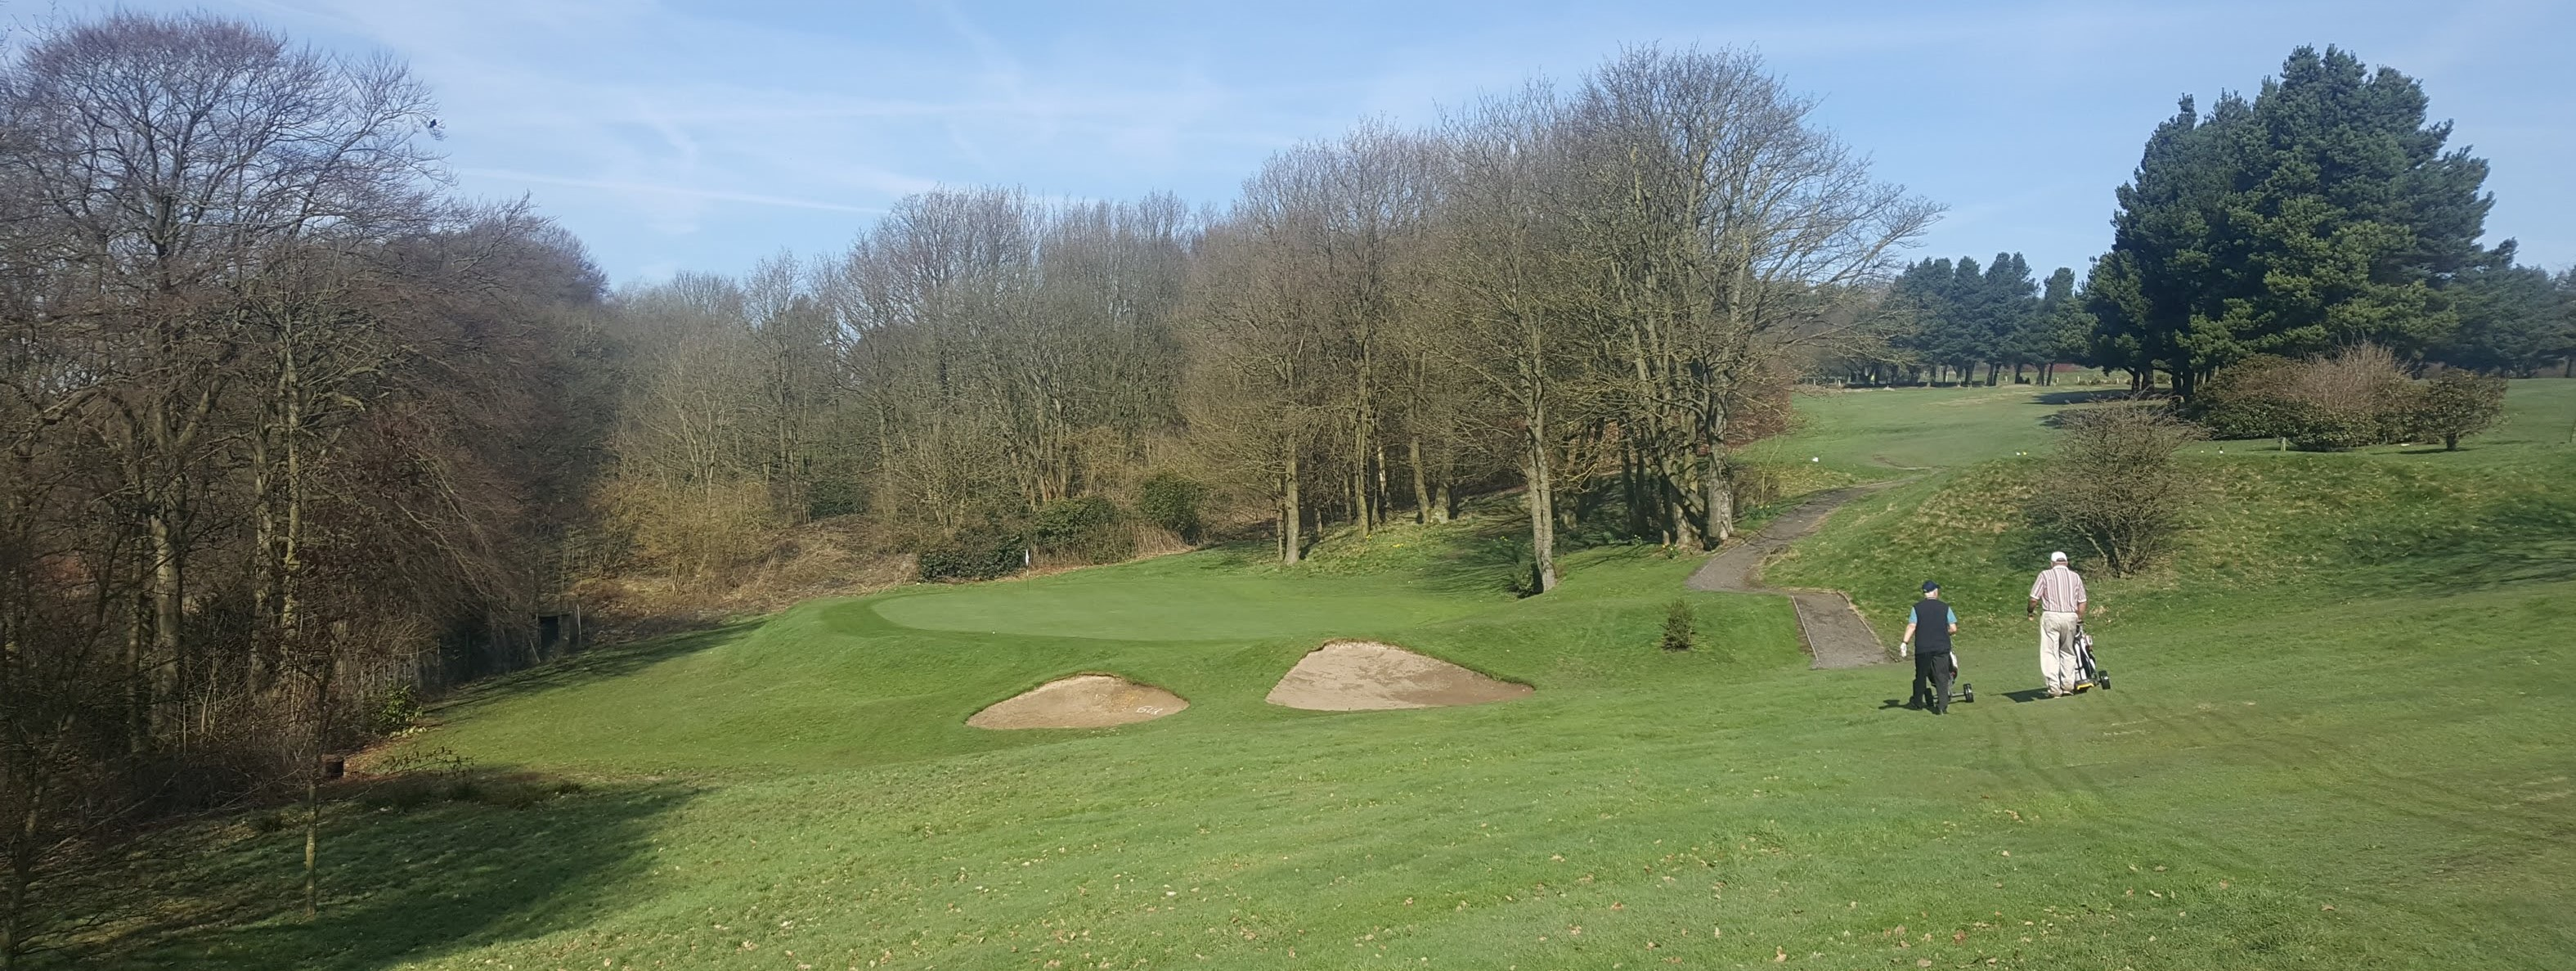 The 14th at West Bradford Golf Club, West Yorkshire